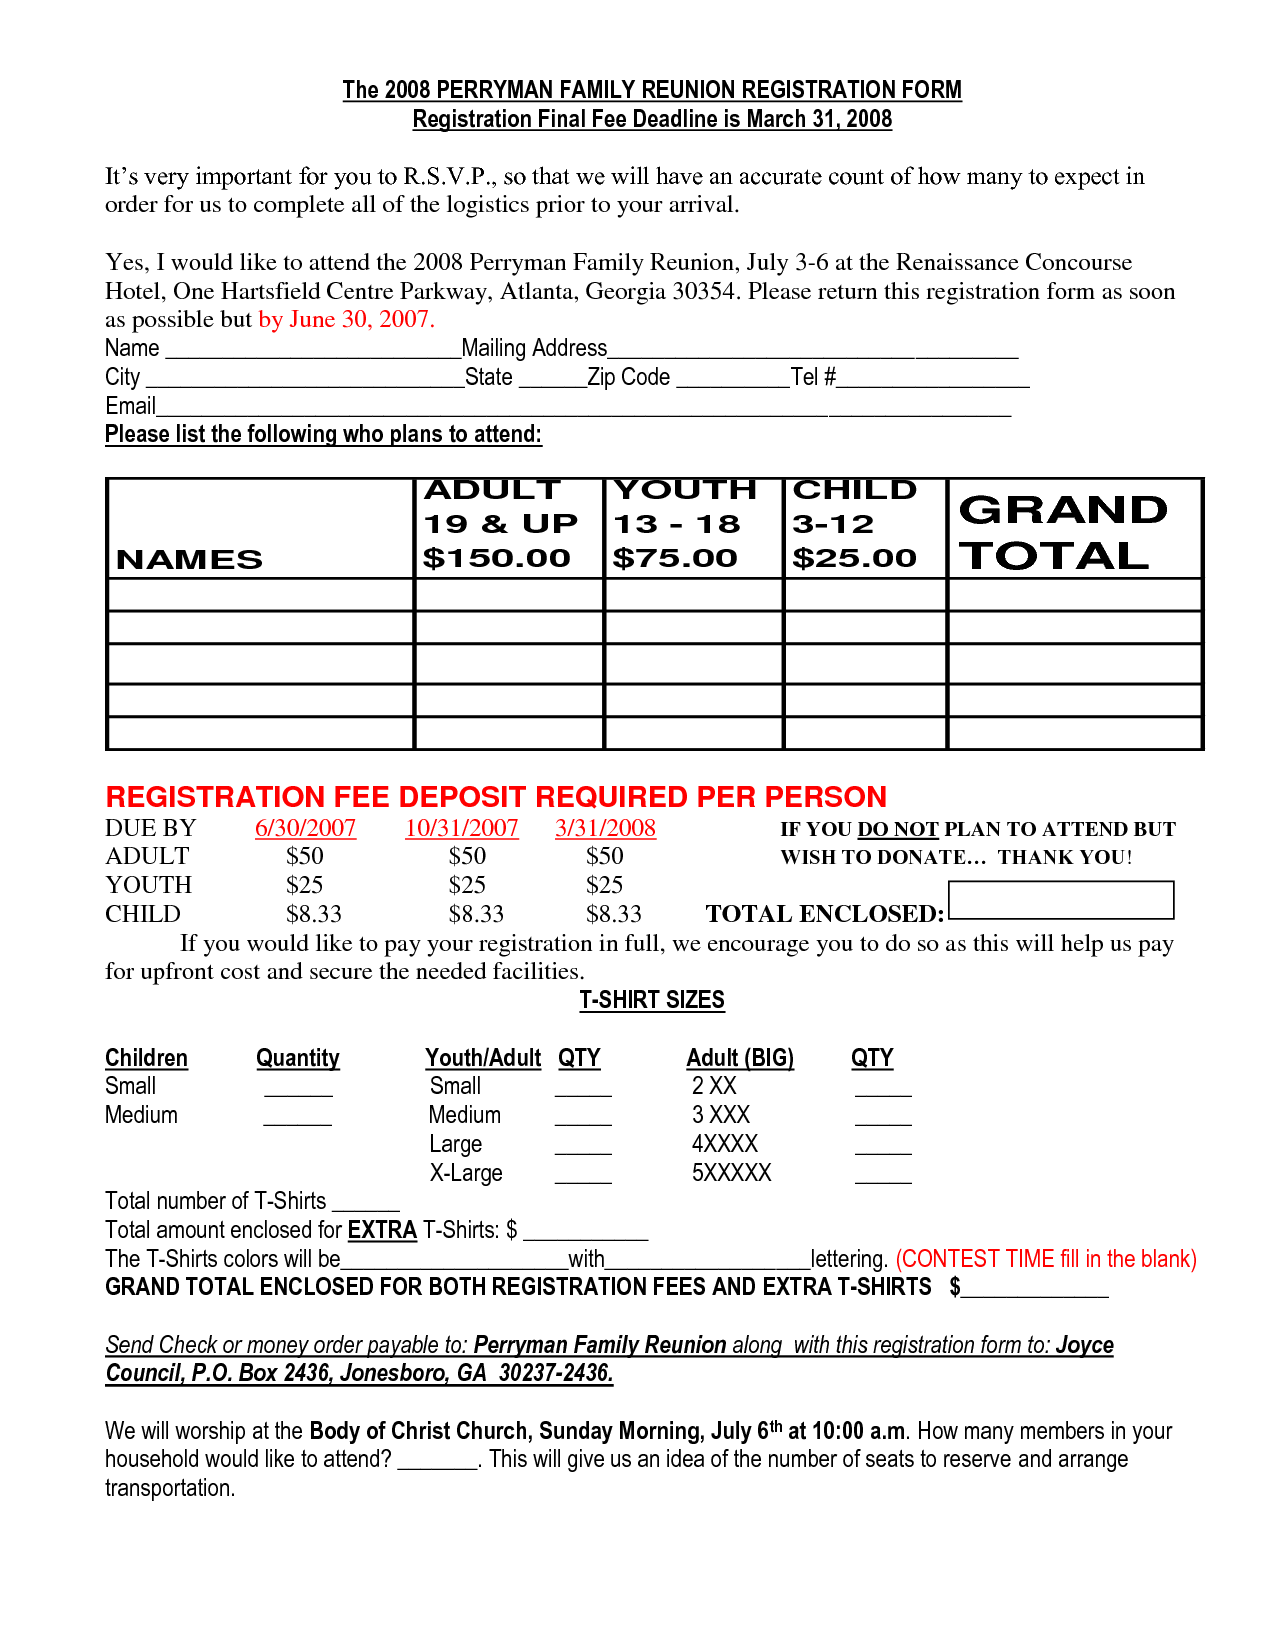 family reunion registration packet | Family Reunion ...